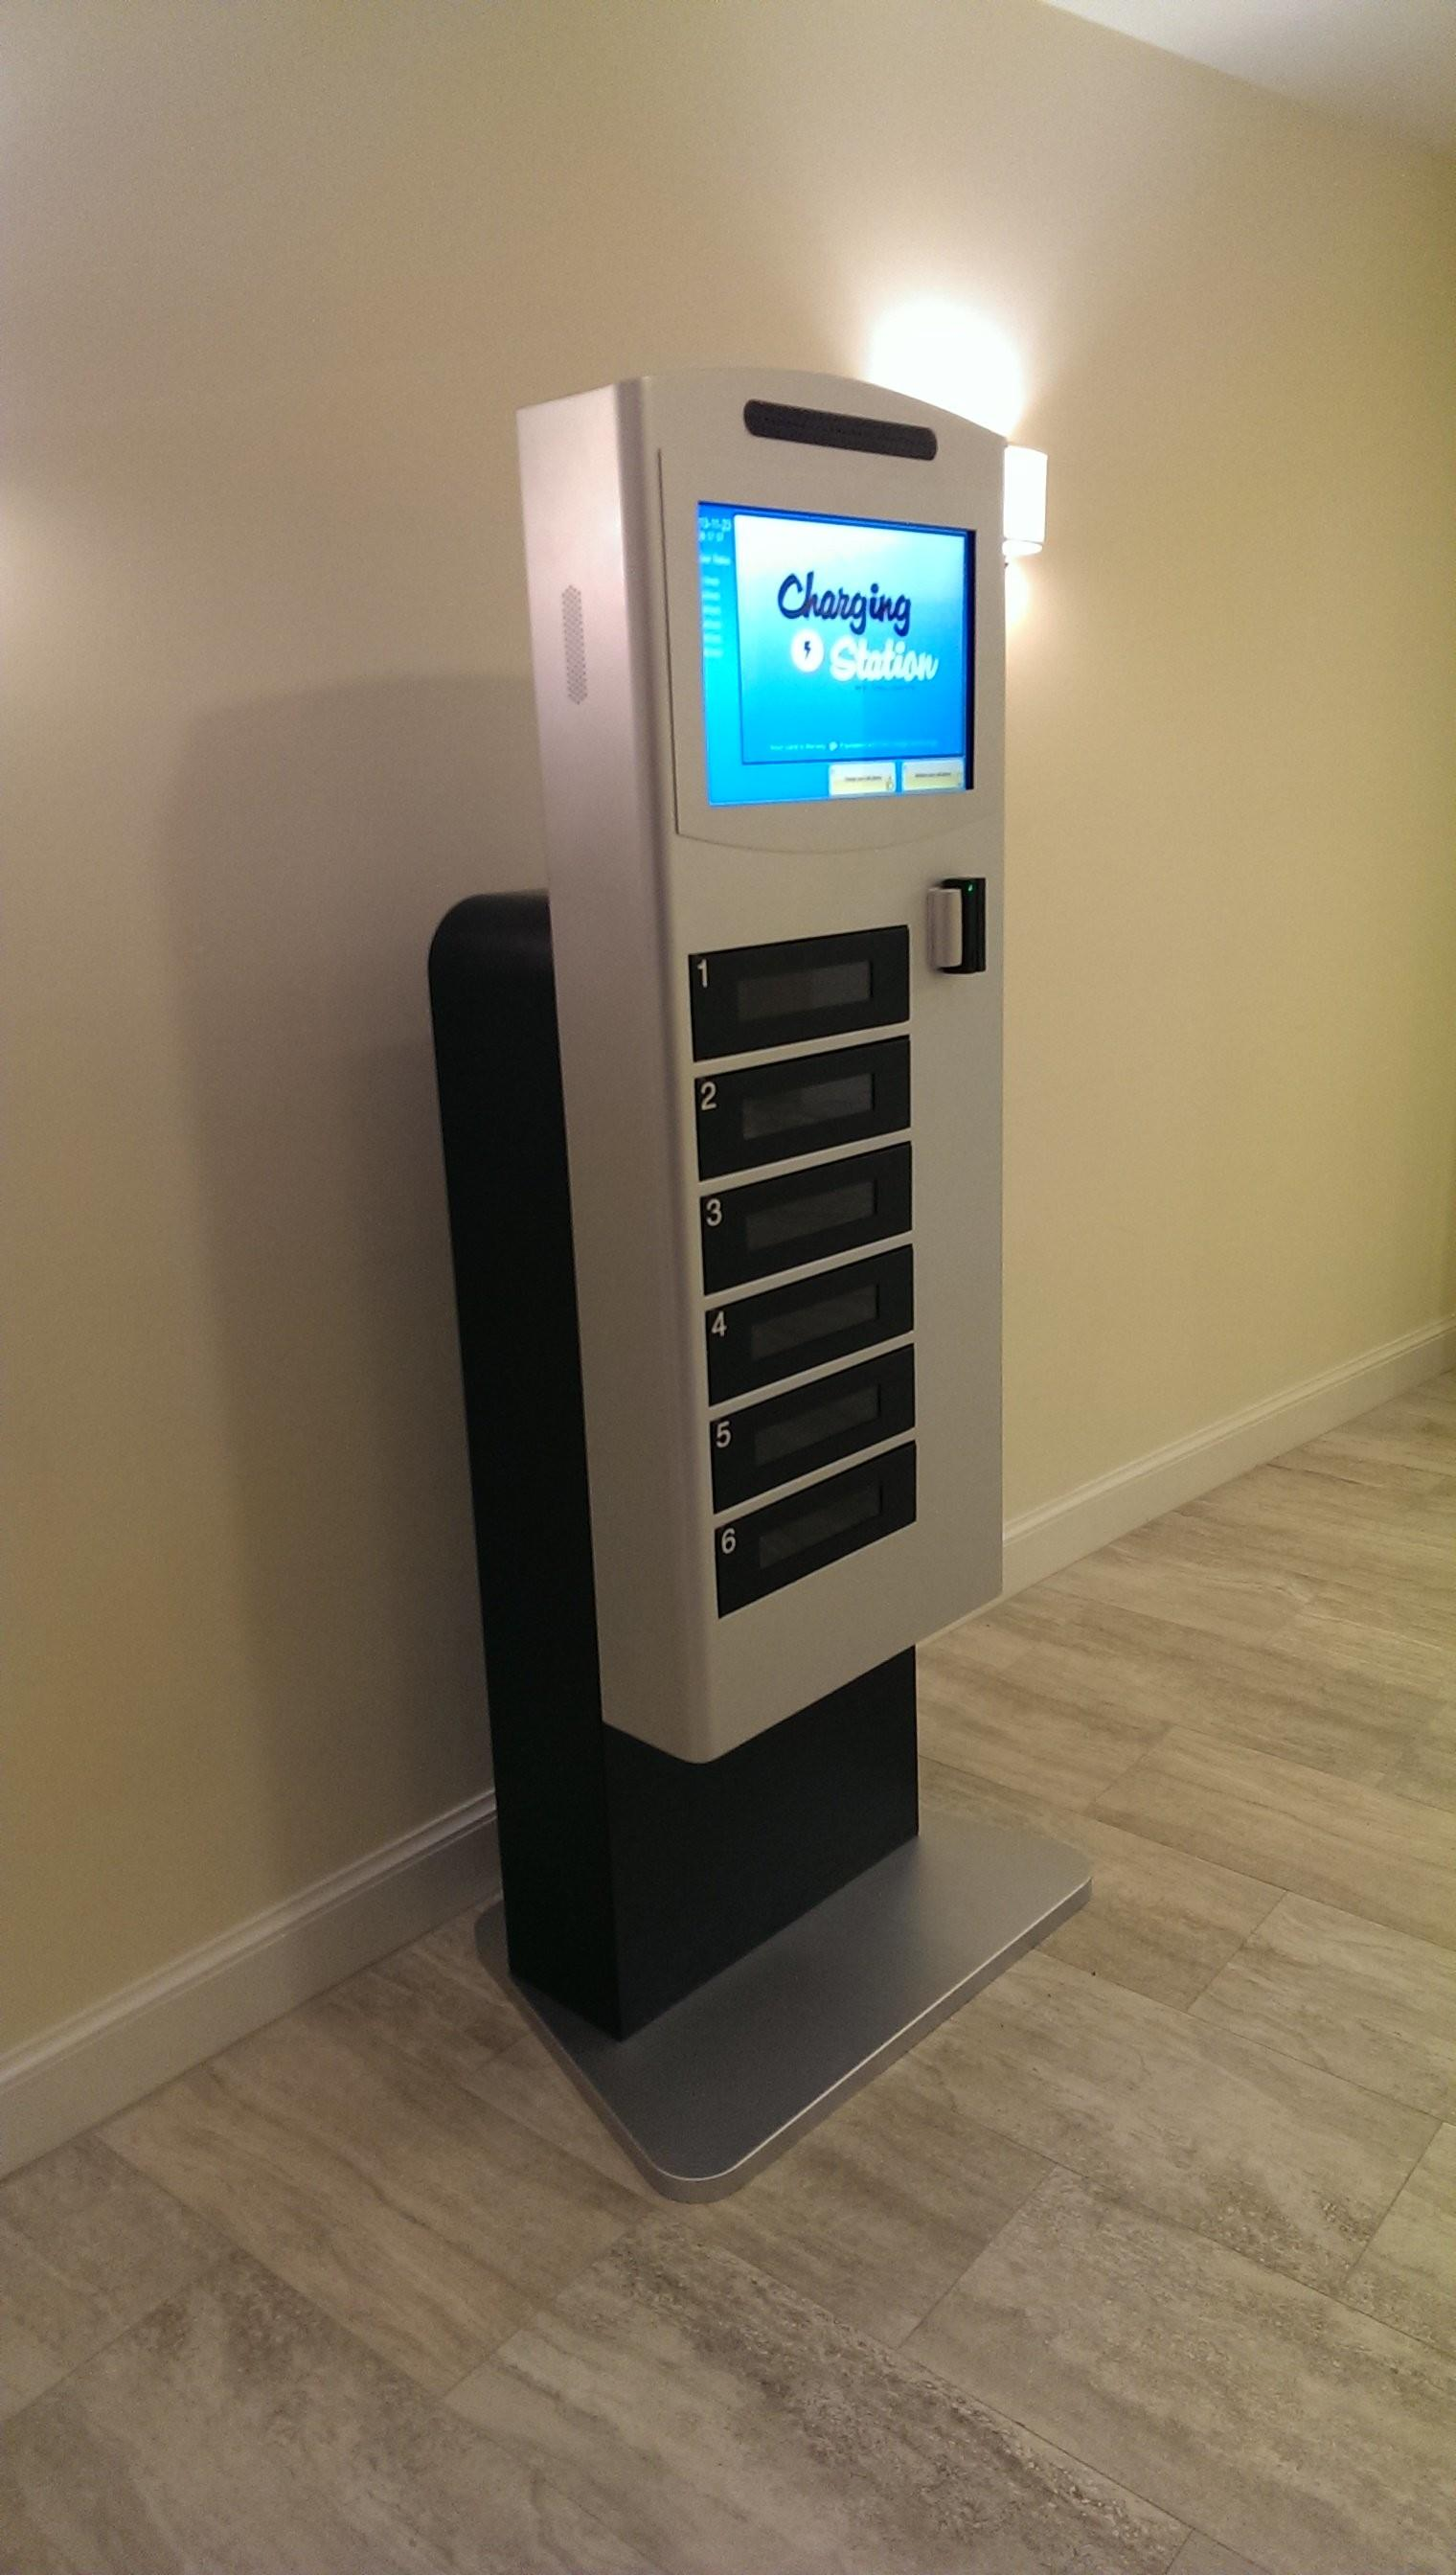 Phone Charging Stations Found